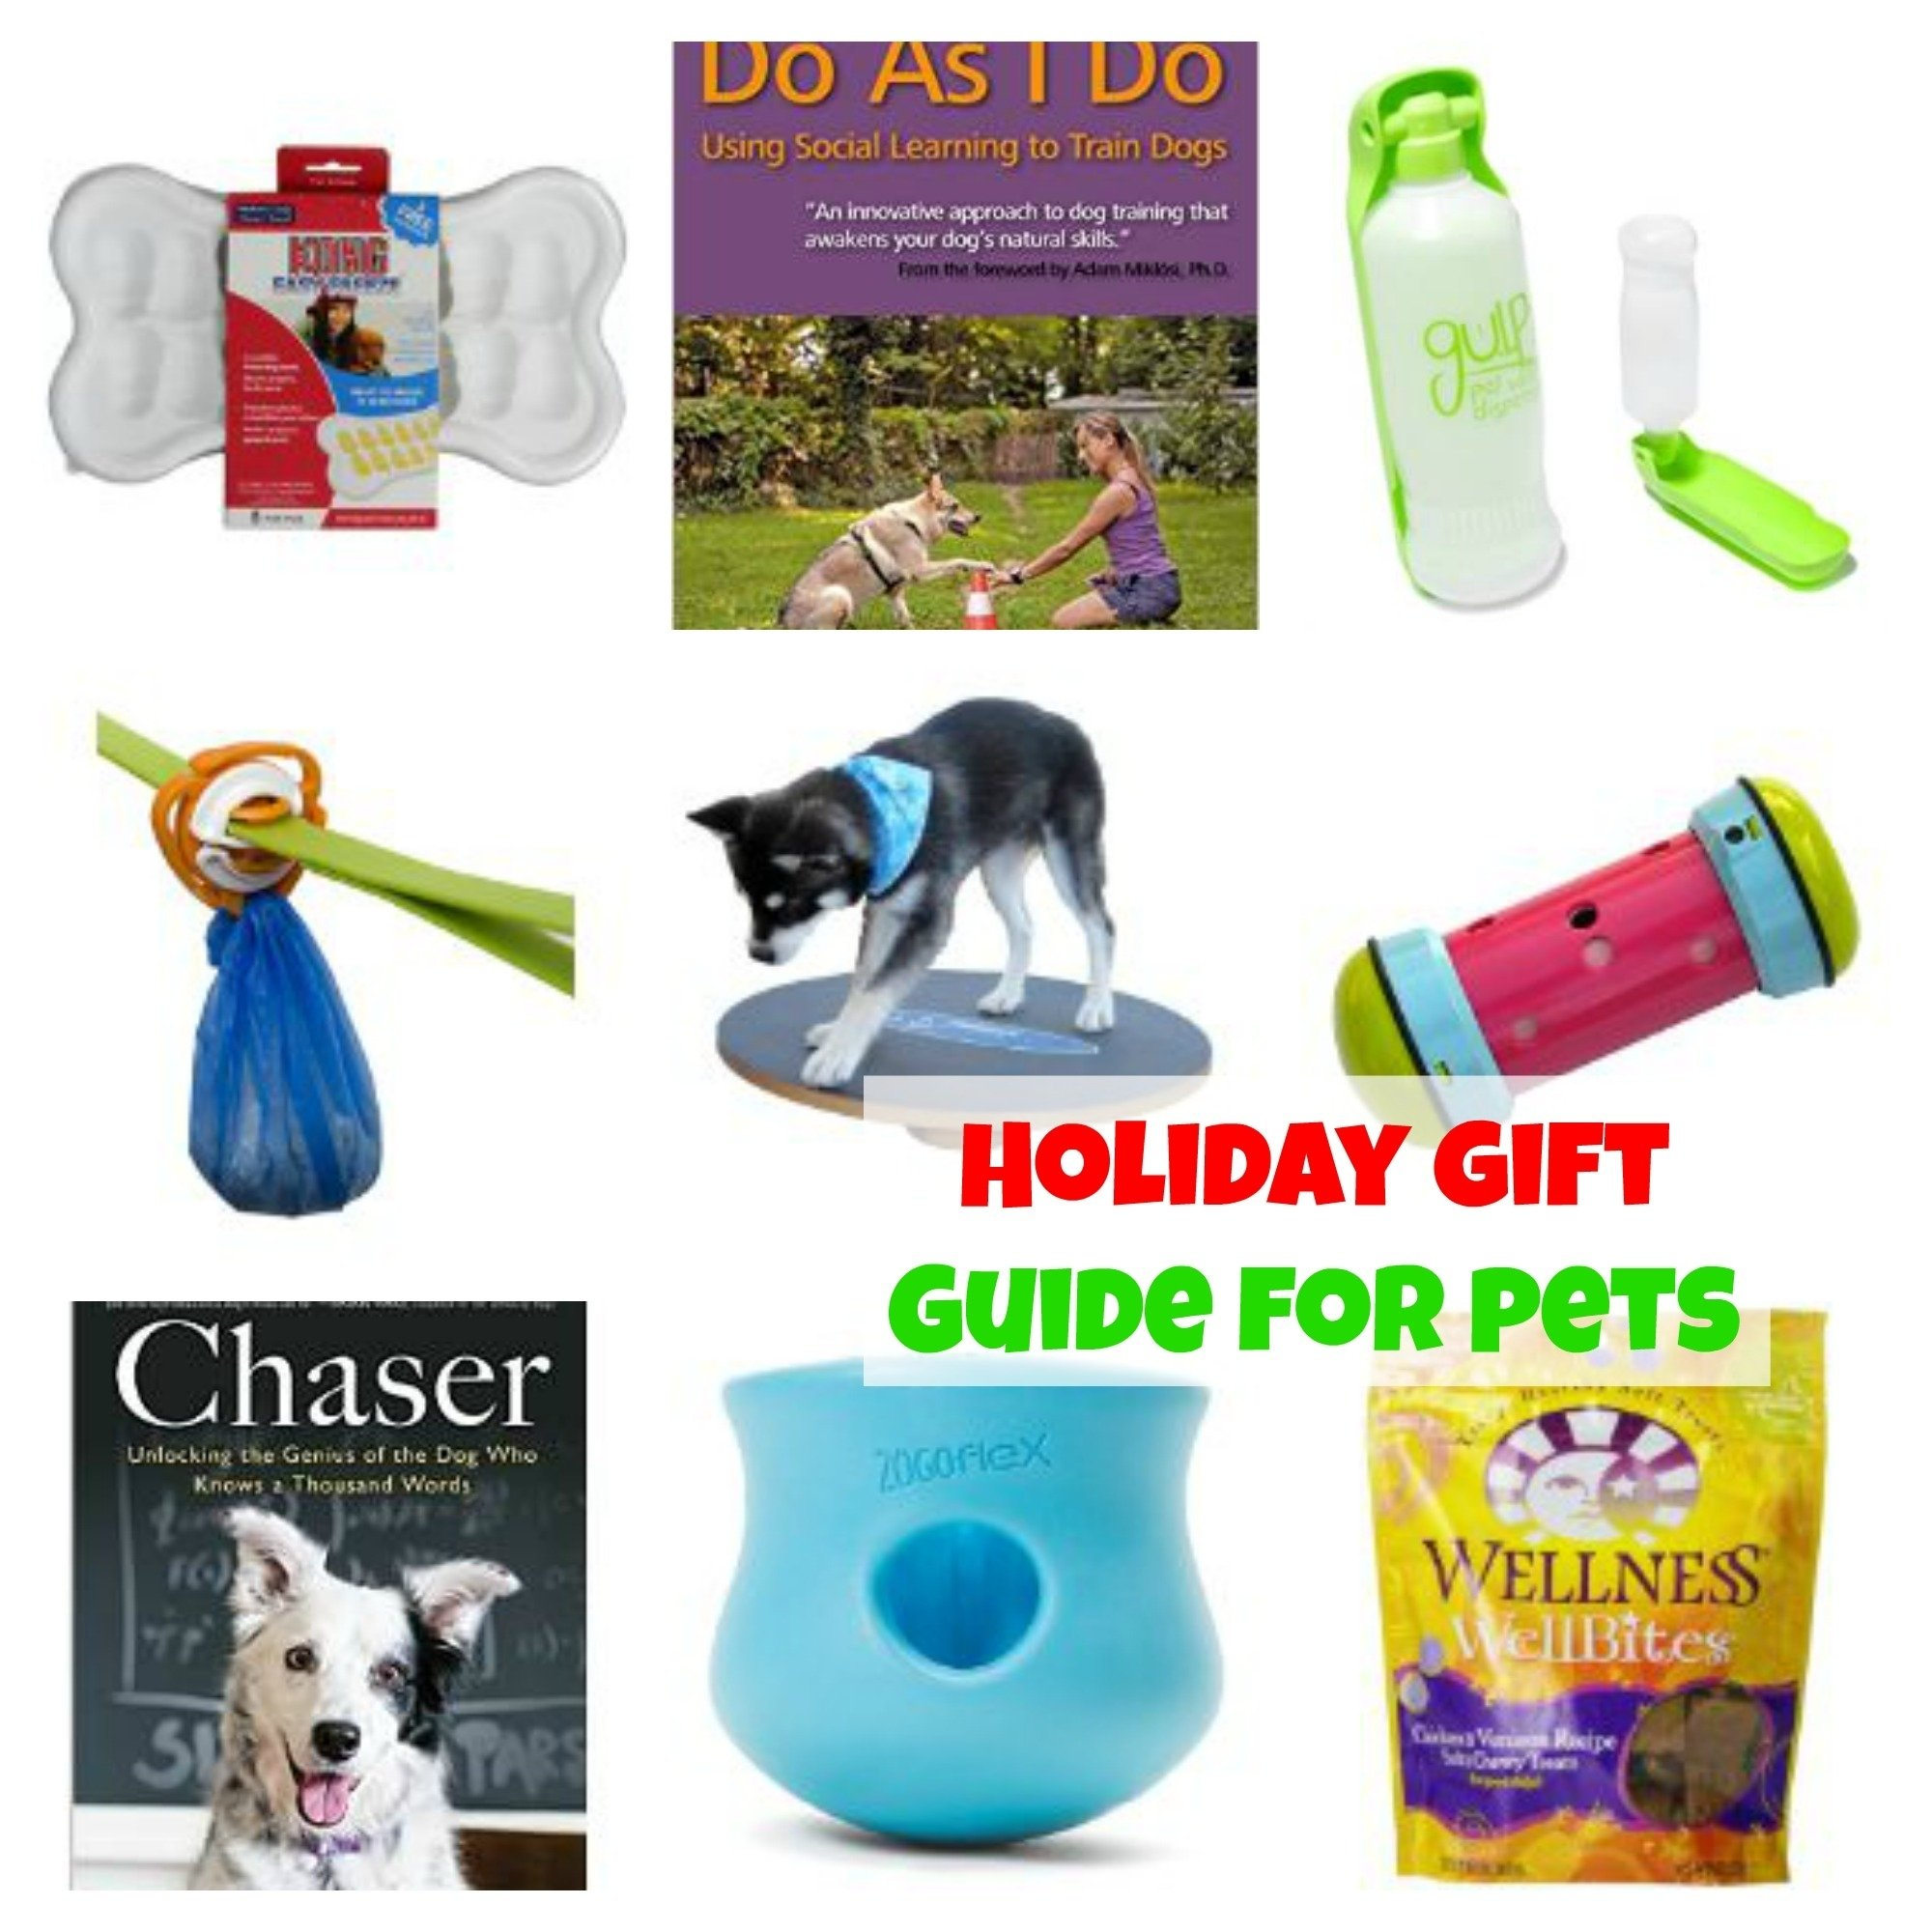 10 Stunning Gift Ideas For Pet Lovers 2014 holiday gift guide for pets and pet lovers stale cheerios 1 2020